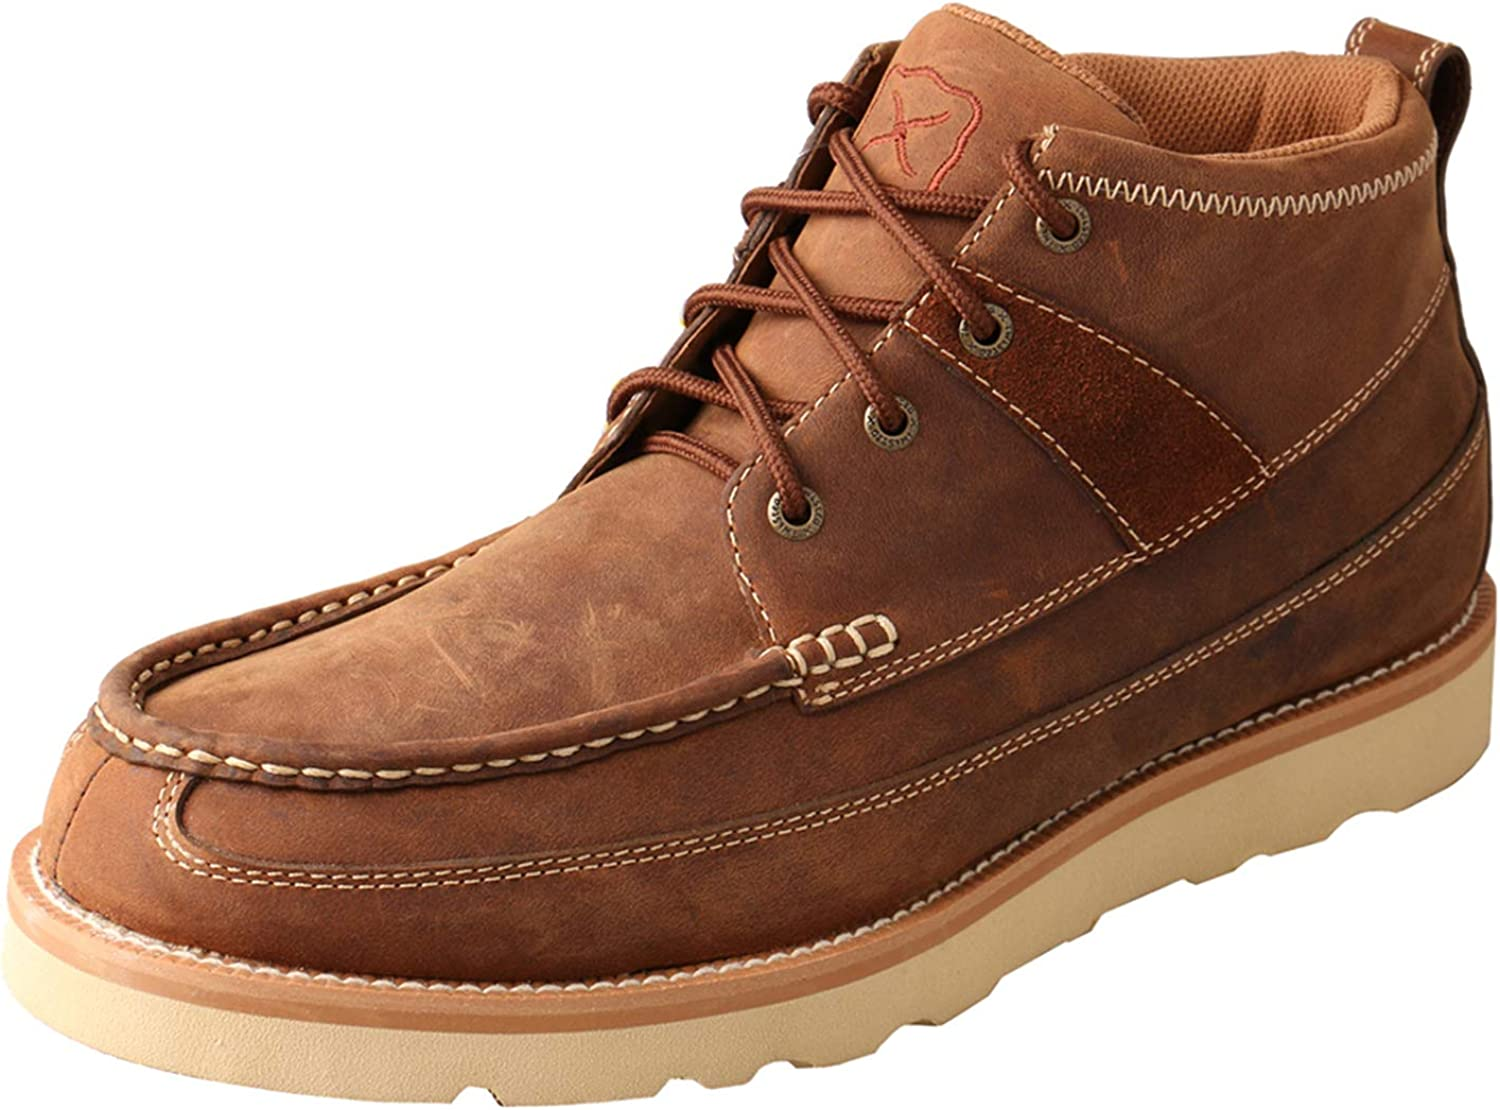 Twisted X Men's Wedge Steel Work Boots Sales results No. 1 Nashville-Davidson Mall Toe